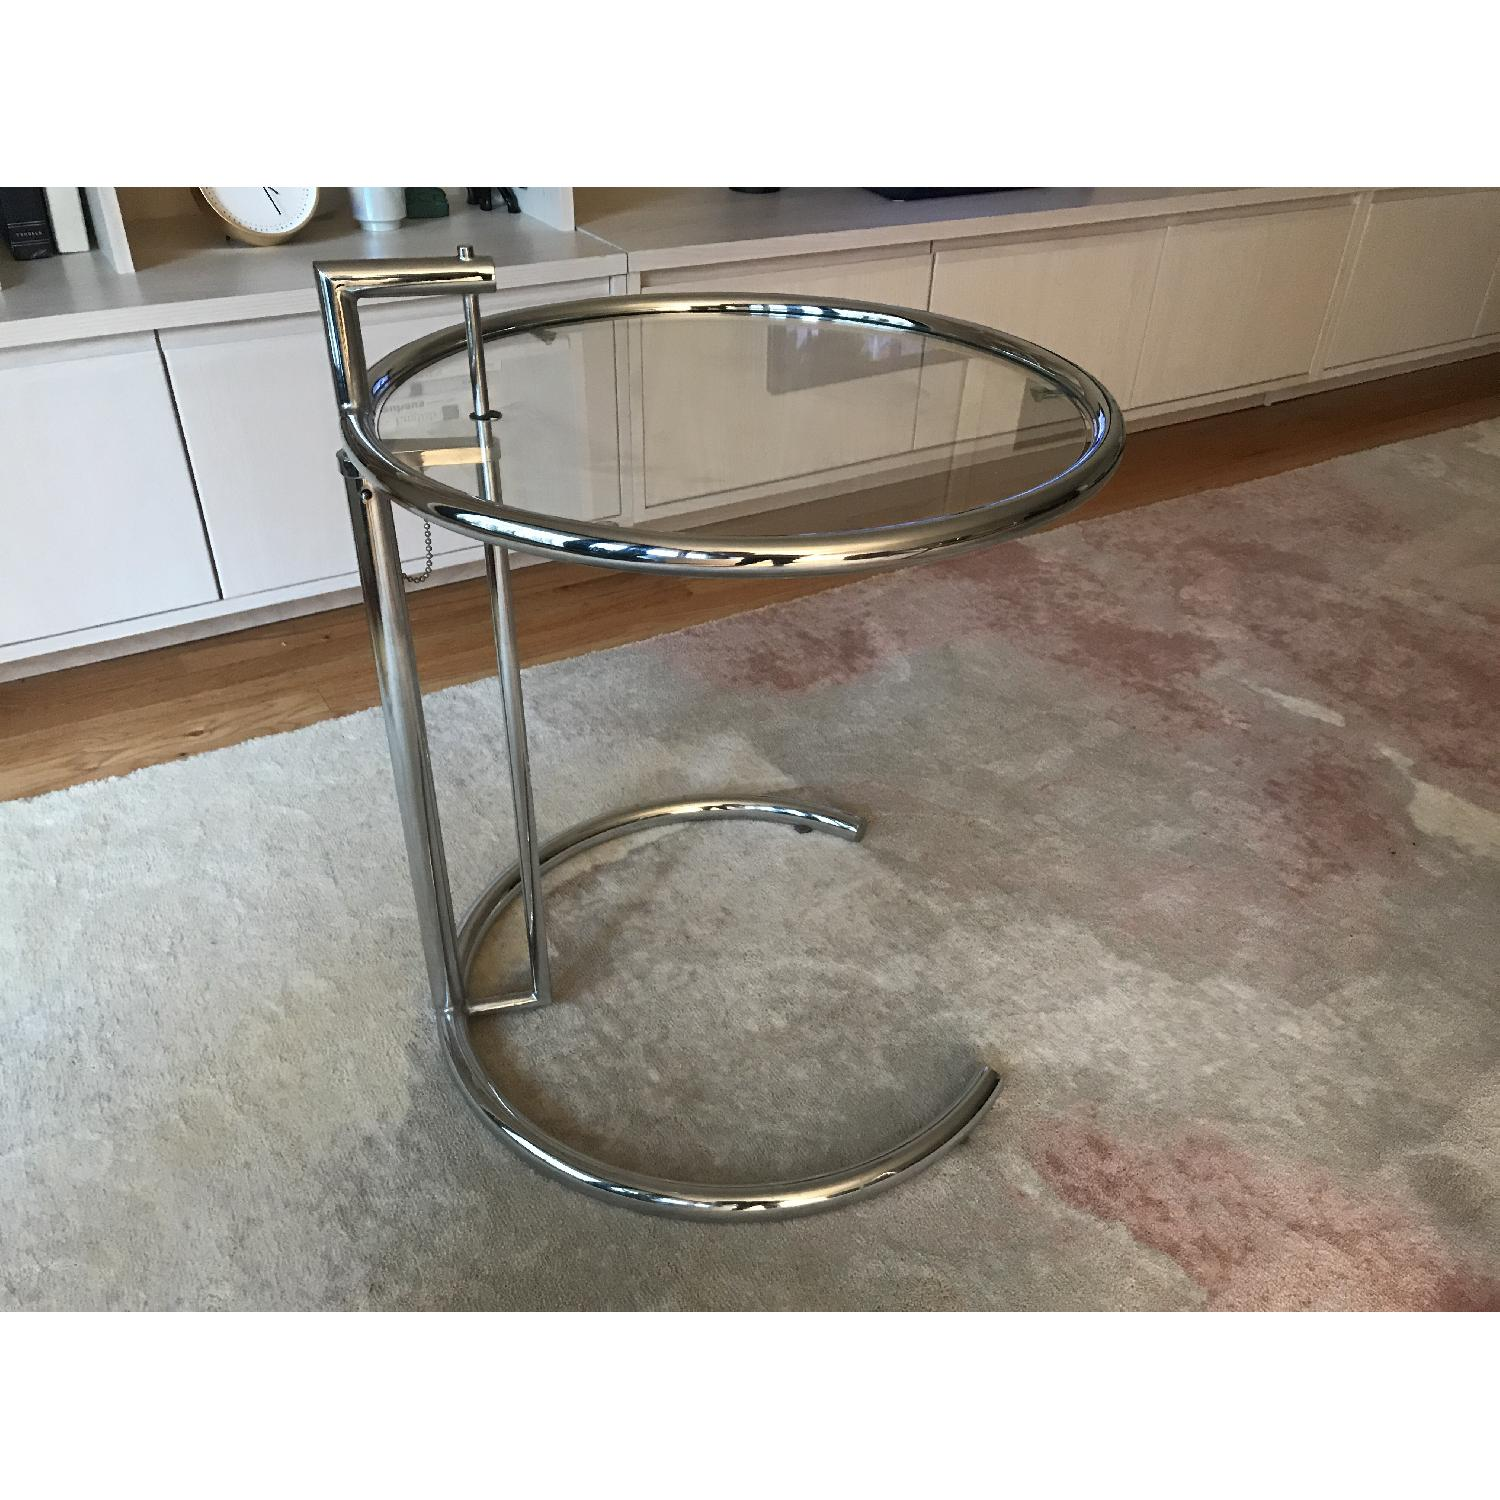 Eileen Gray Replica SIde Table in Silver - image-2